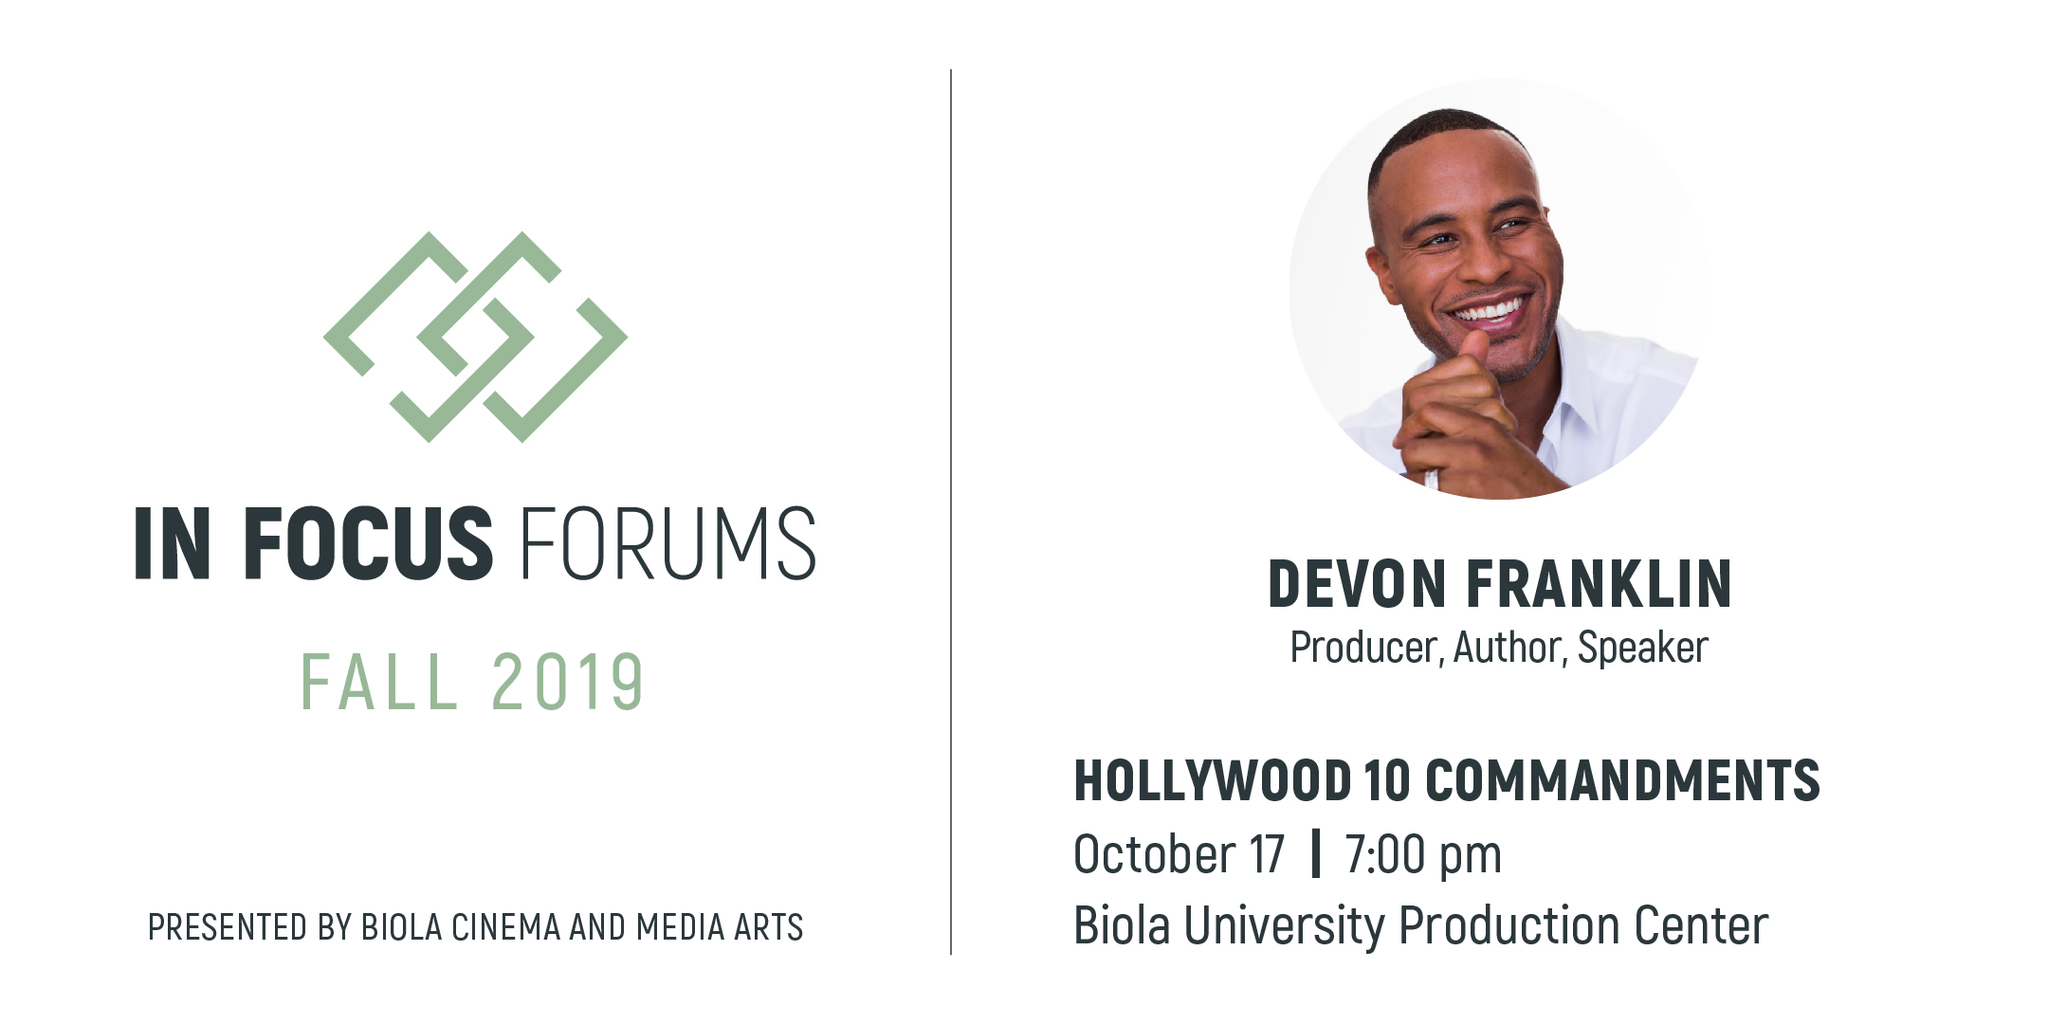 In Focus Forum Fall 2019 event details including speaker, event title, time and location